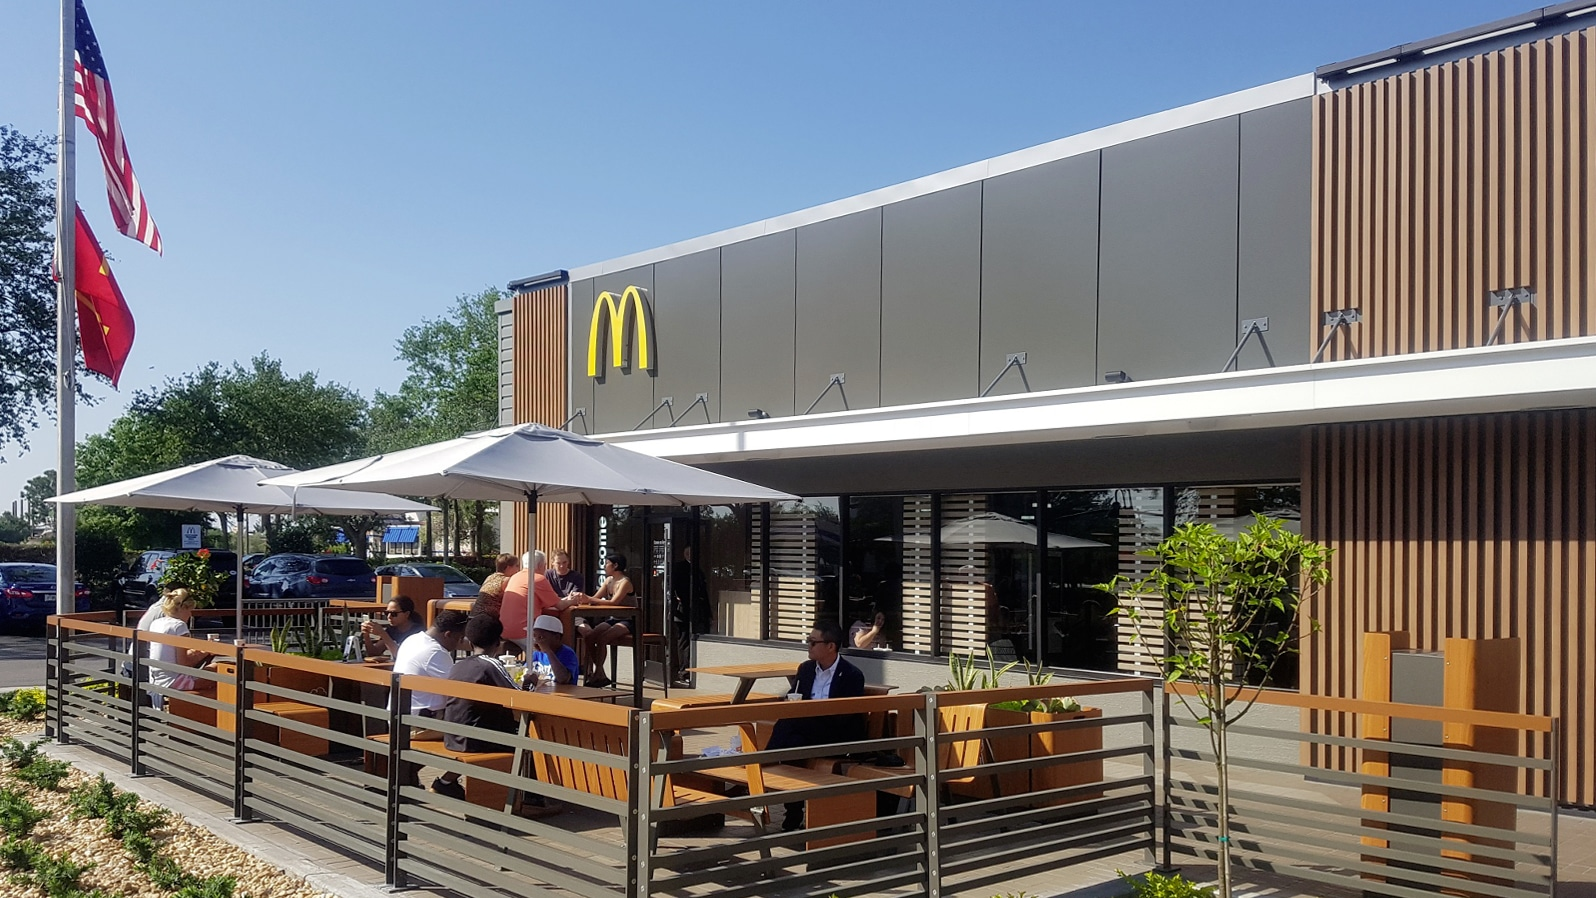 Aubrilam Involved With The Renovation Of The Mcdonalds Restaurants